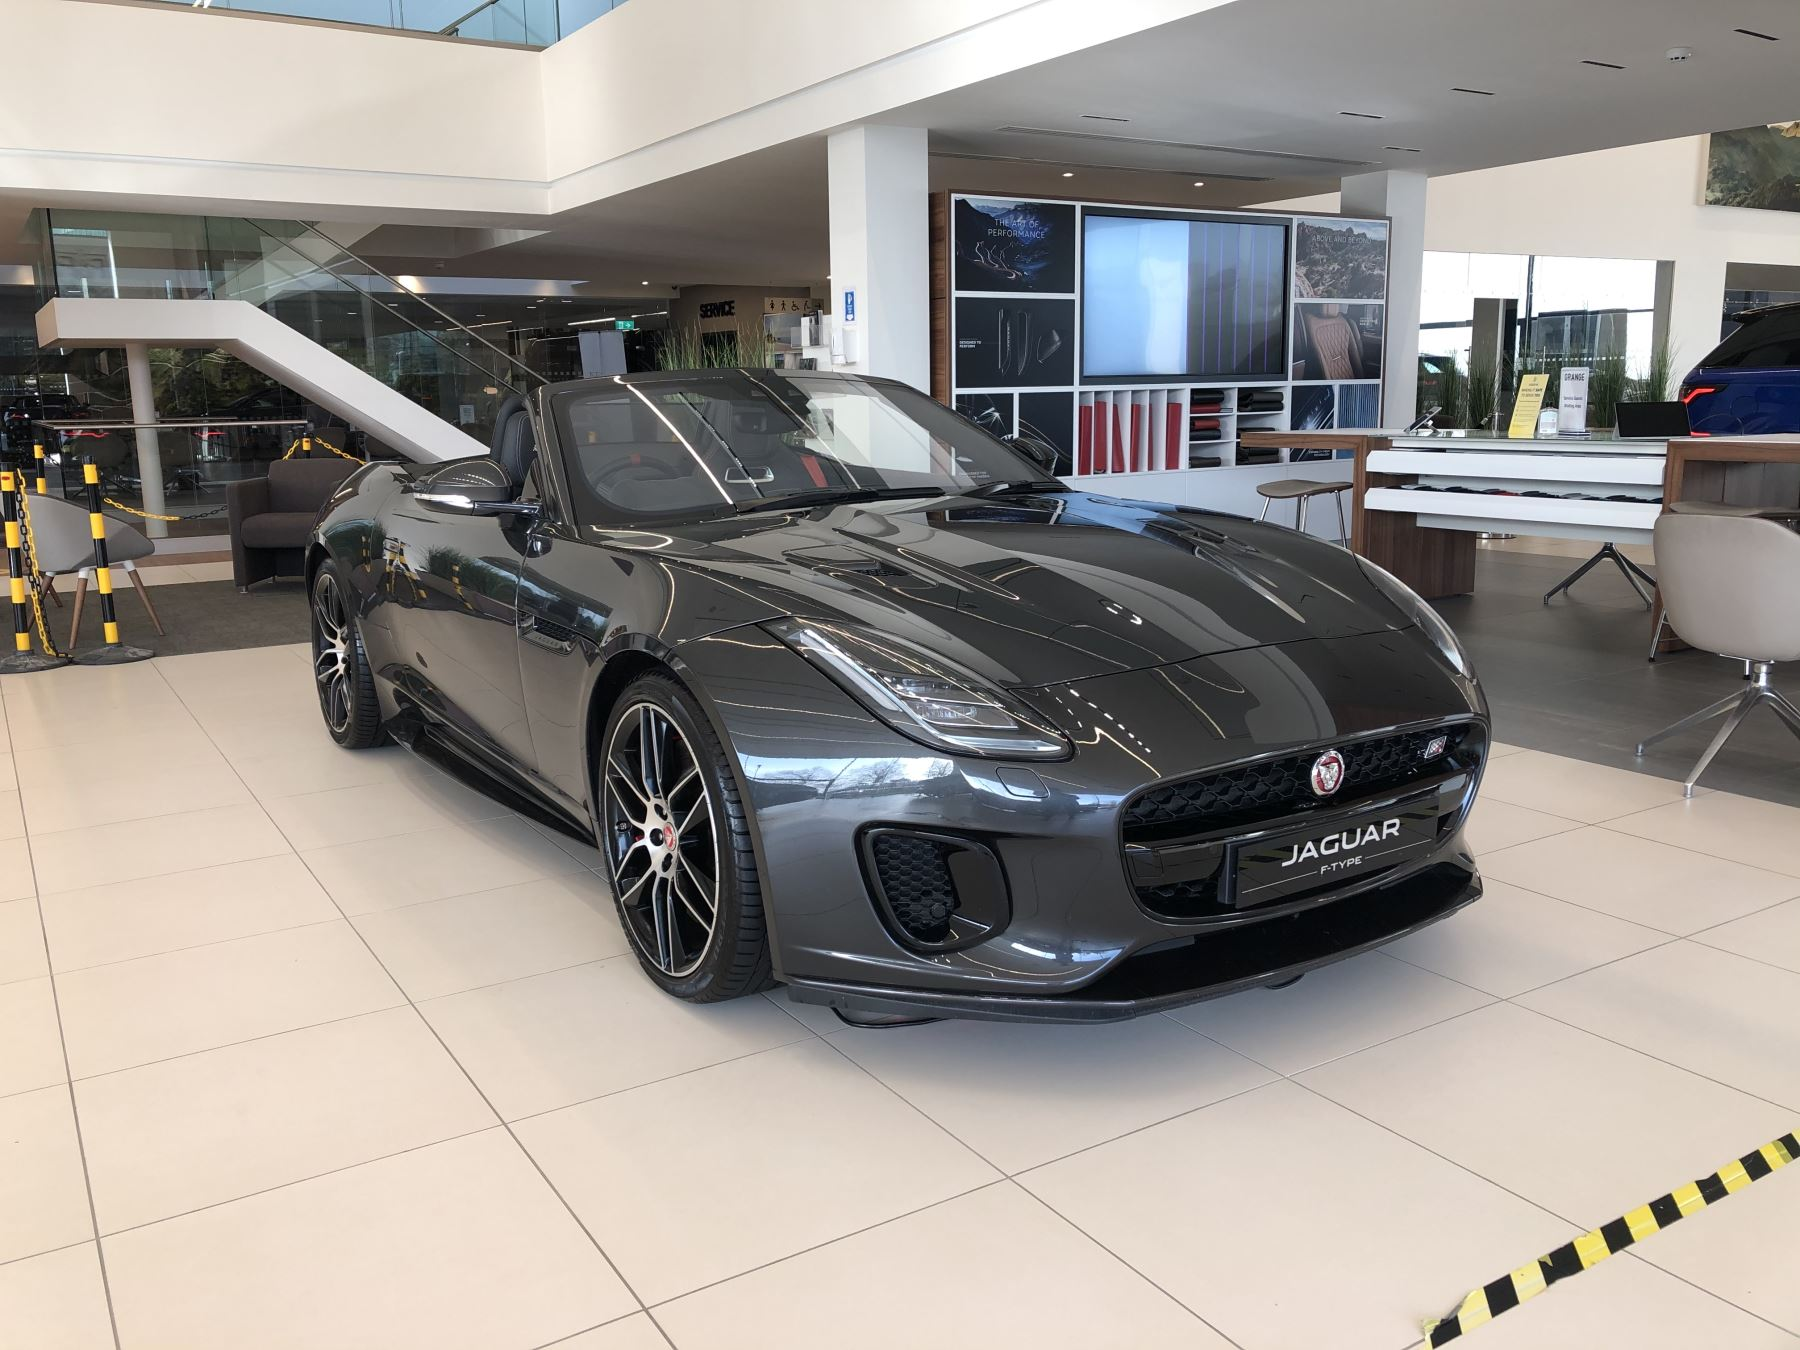 Jaguar F-TYPE 3.0 [380] S/C V6 Chequered Flag 2dr AWD Automatic Convertible (2020)